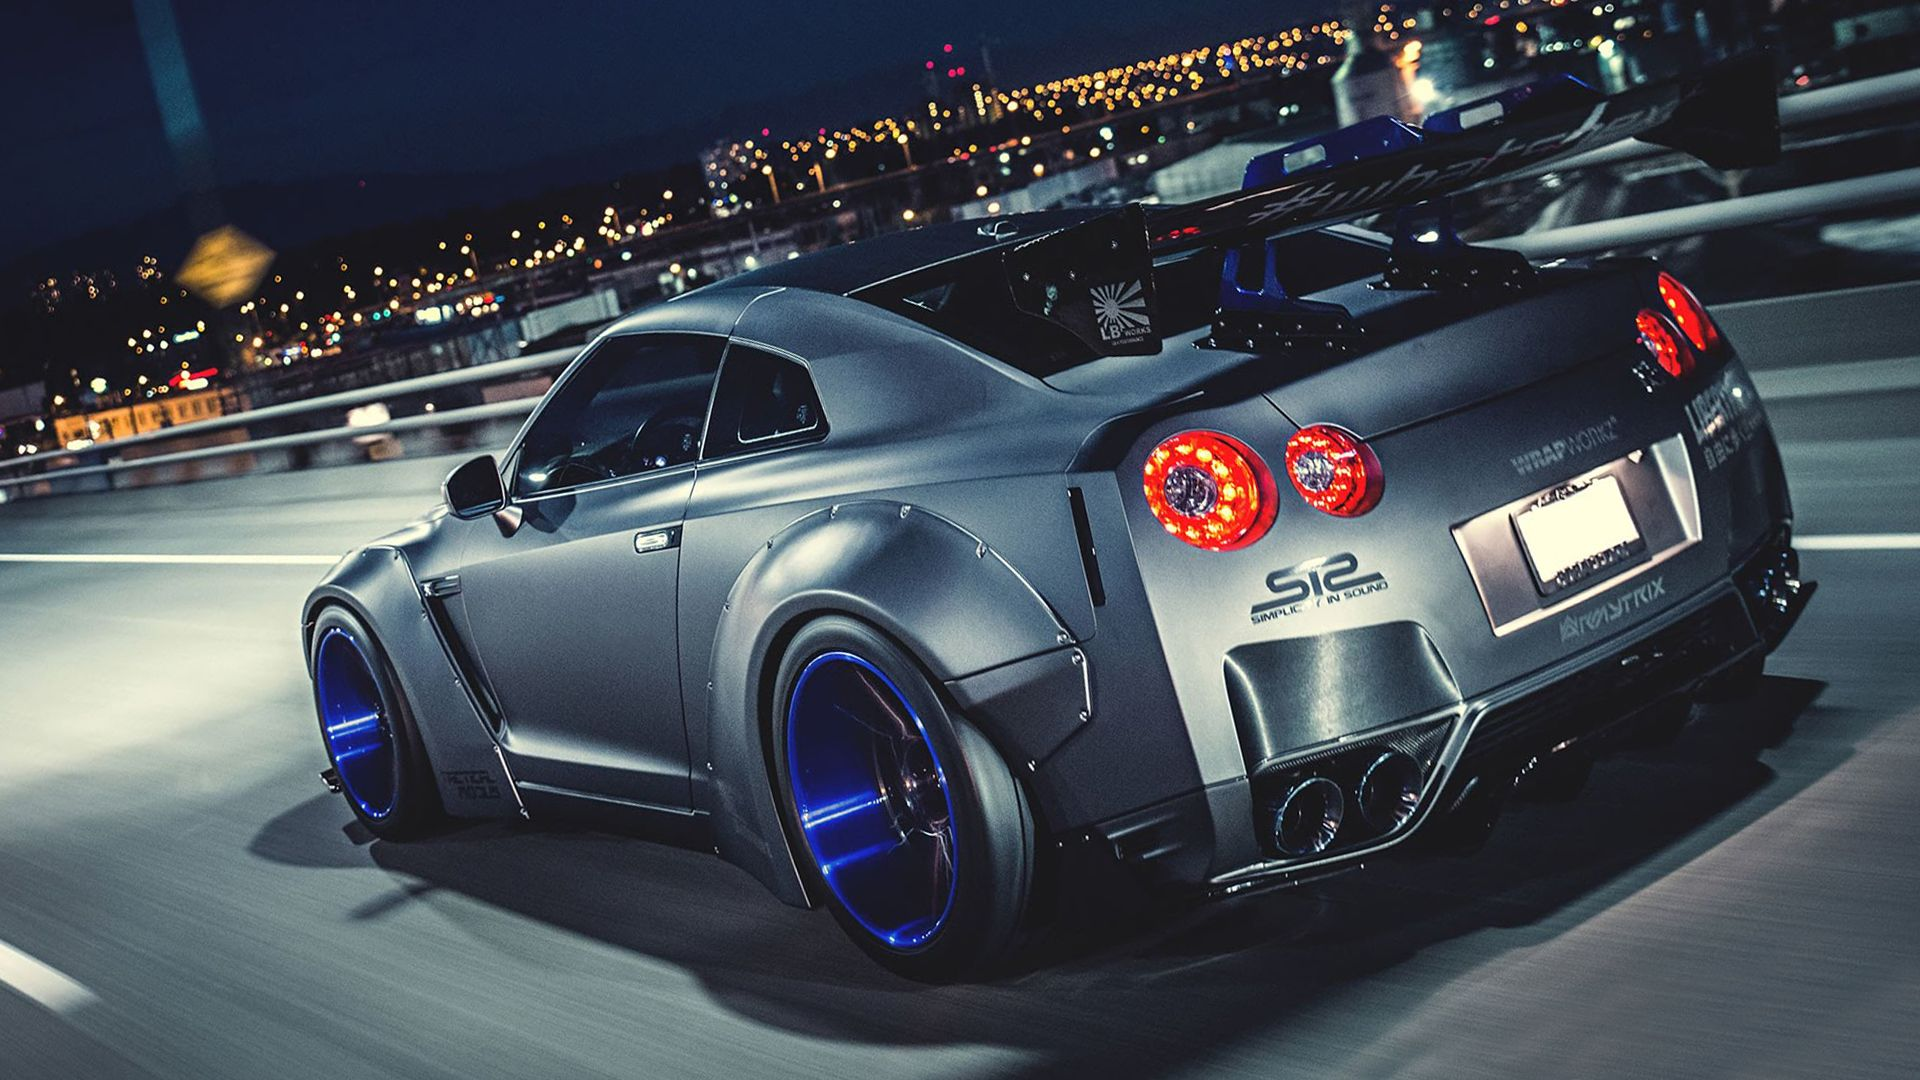 Best Nissan Gt R Wallpapers Top Free Best Nissan Gt R Backgrounds Wallpaperaccess